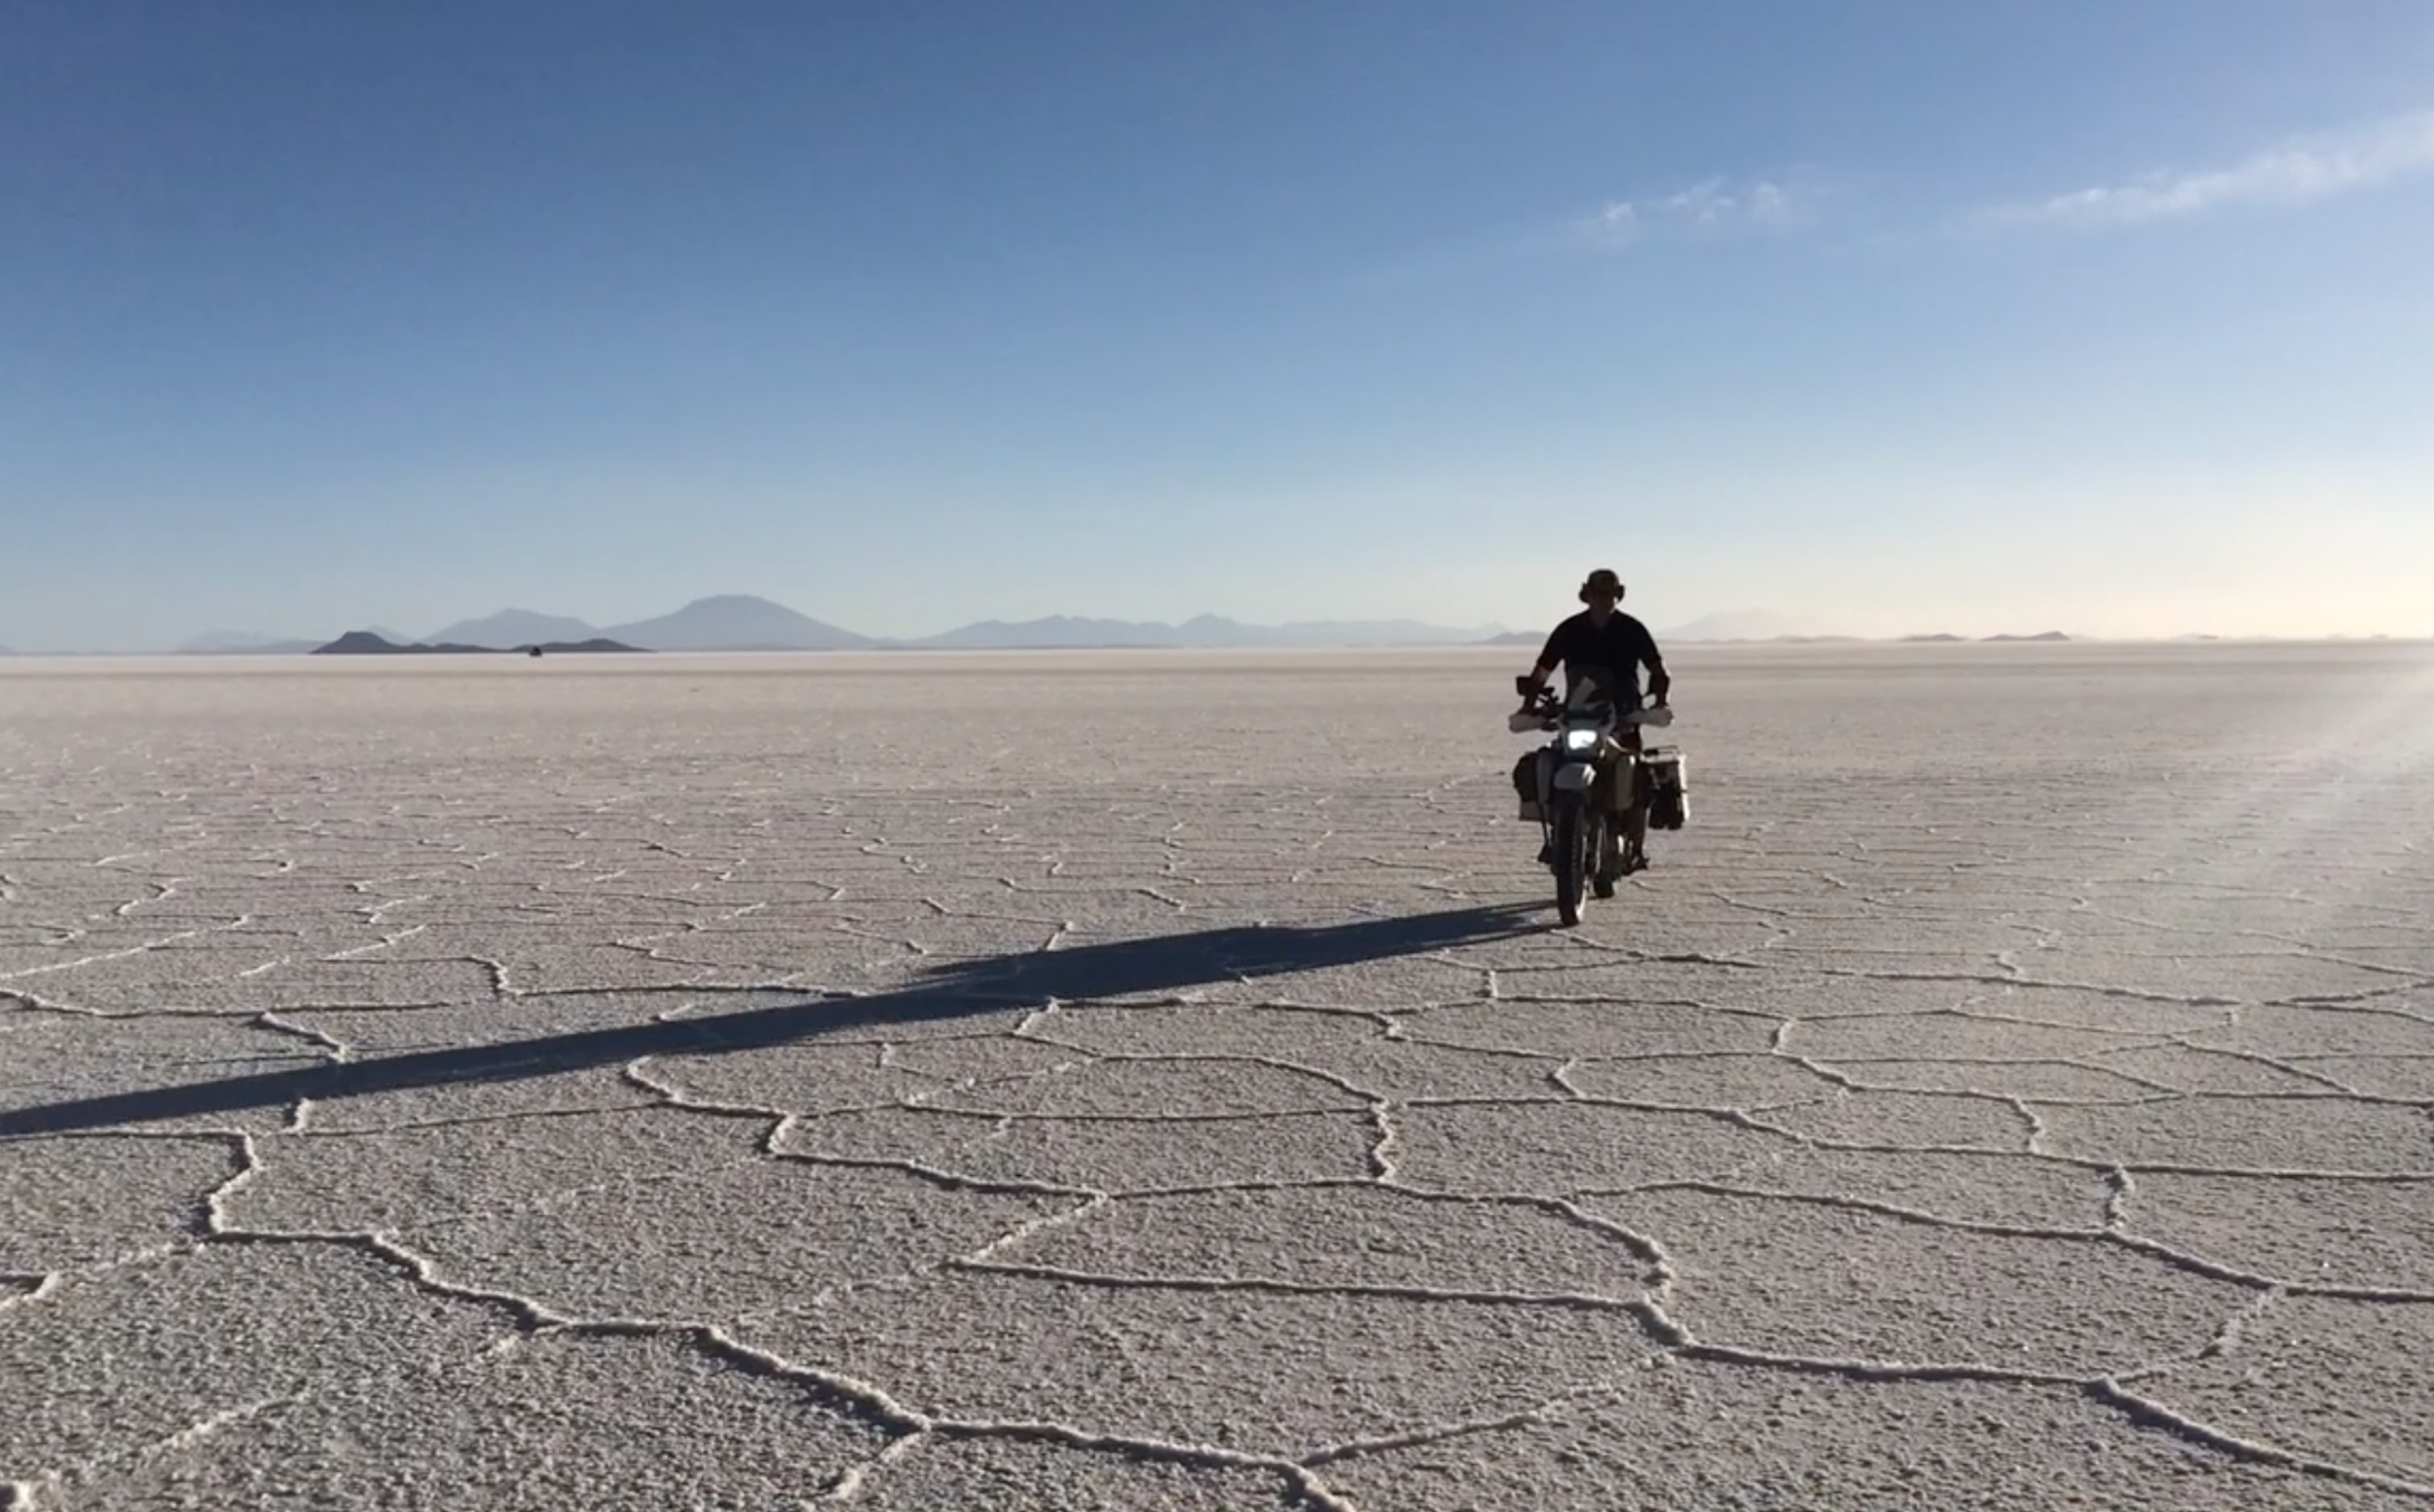 Riding on the Salt, Stay away from the edge of the island where it is wet and soft.  Salar de Uyuni, Bolivia